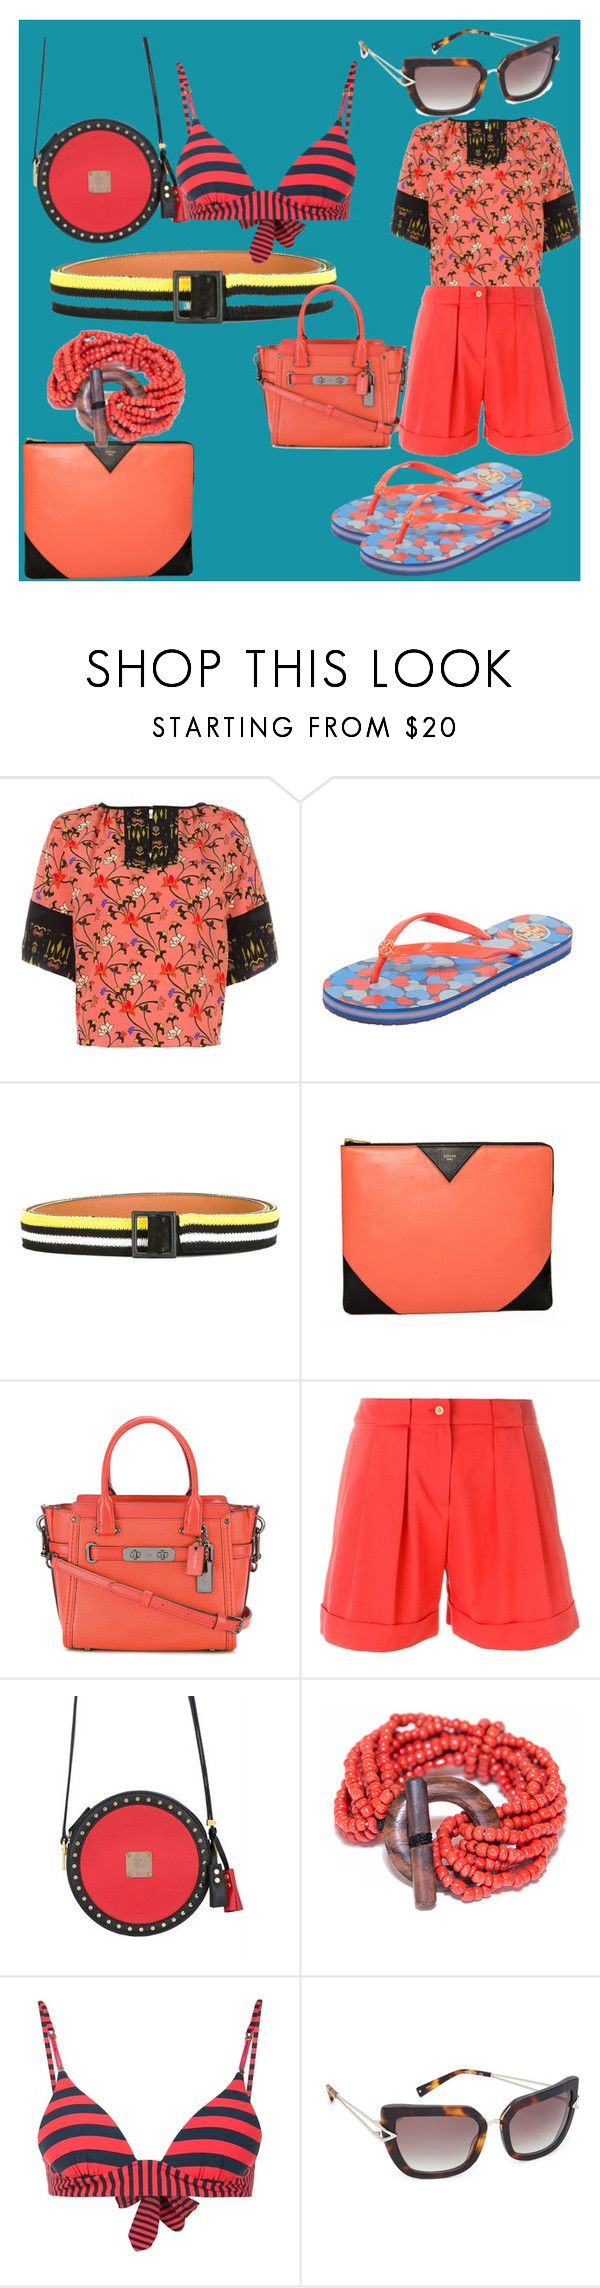 """set sale alert"" by denisee-denisee ❤ liked on Polyvore featuring Etro, Tory Burch, Ermanno Scervino, CÉLINE, Coach, Cacharel, MCM, STELLA McCARTNEY, Kendall + Kylie and vintage"